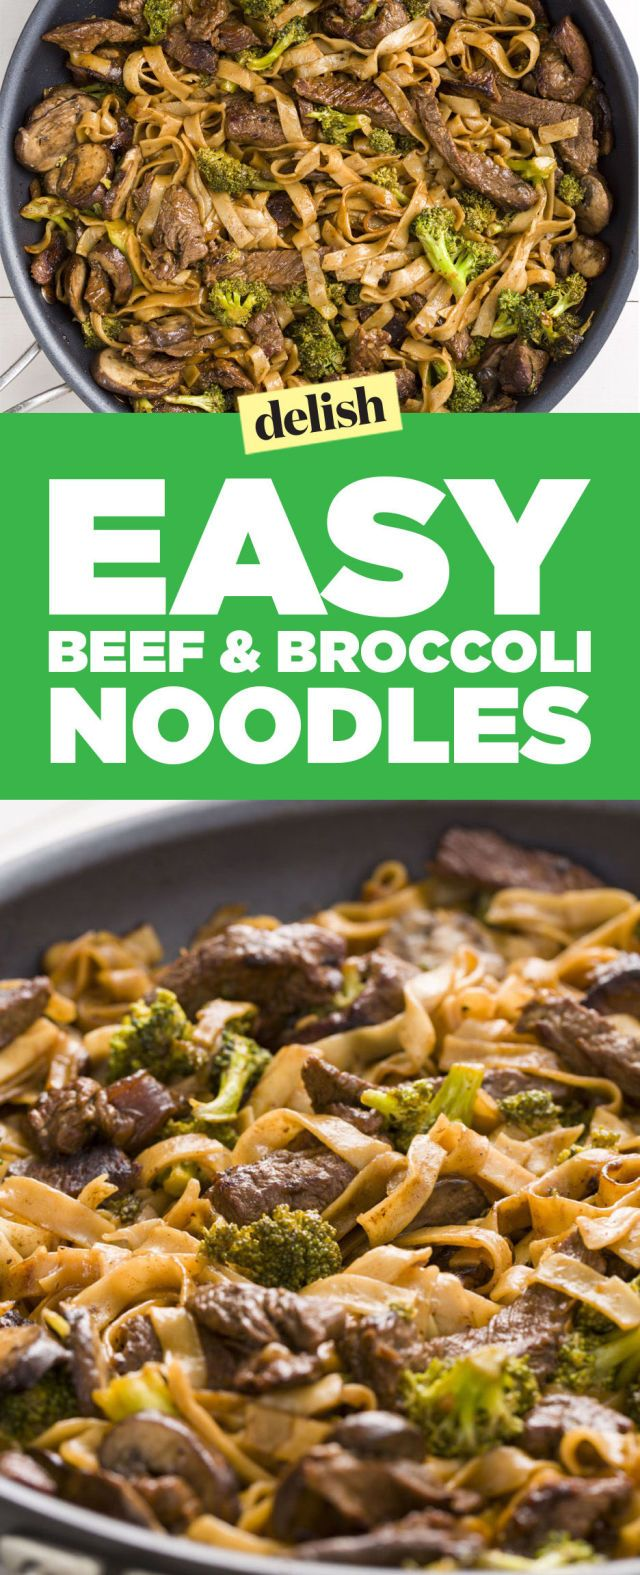 With soy sauce-infused flank steak and broccoli, these rice noodles are so much better than takeout.